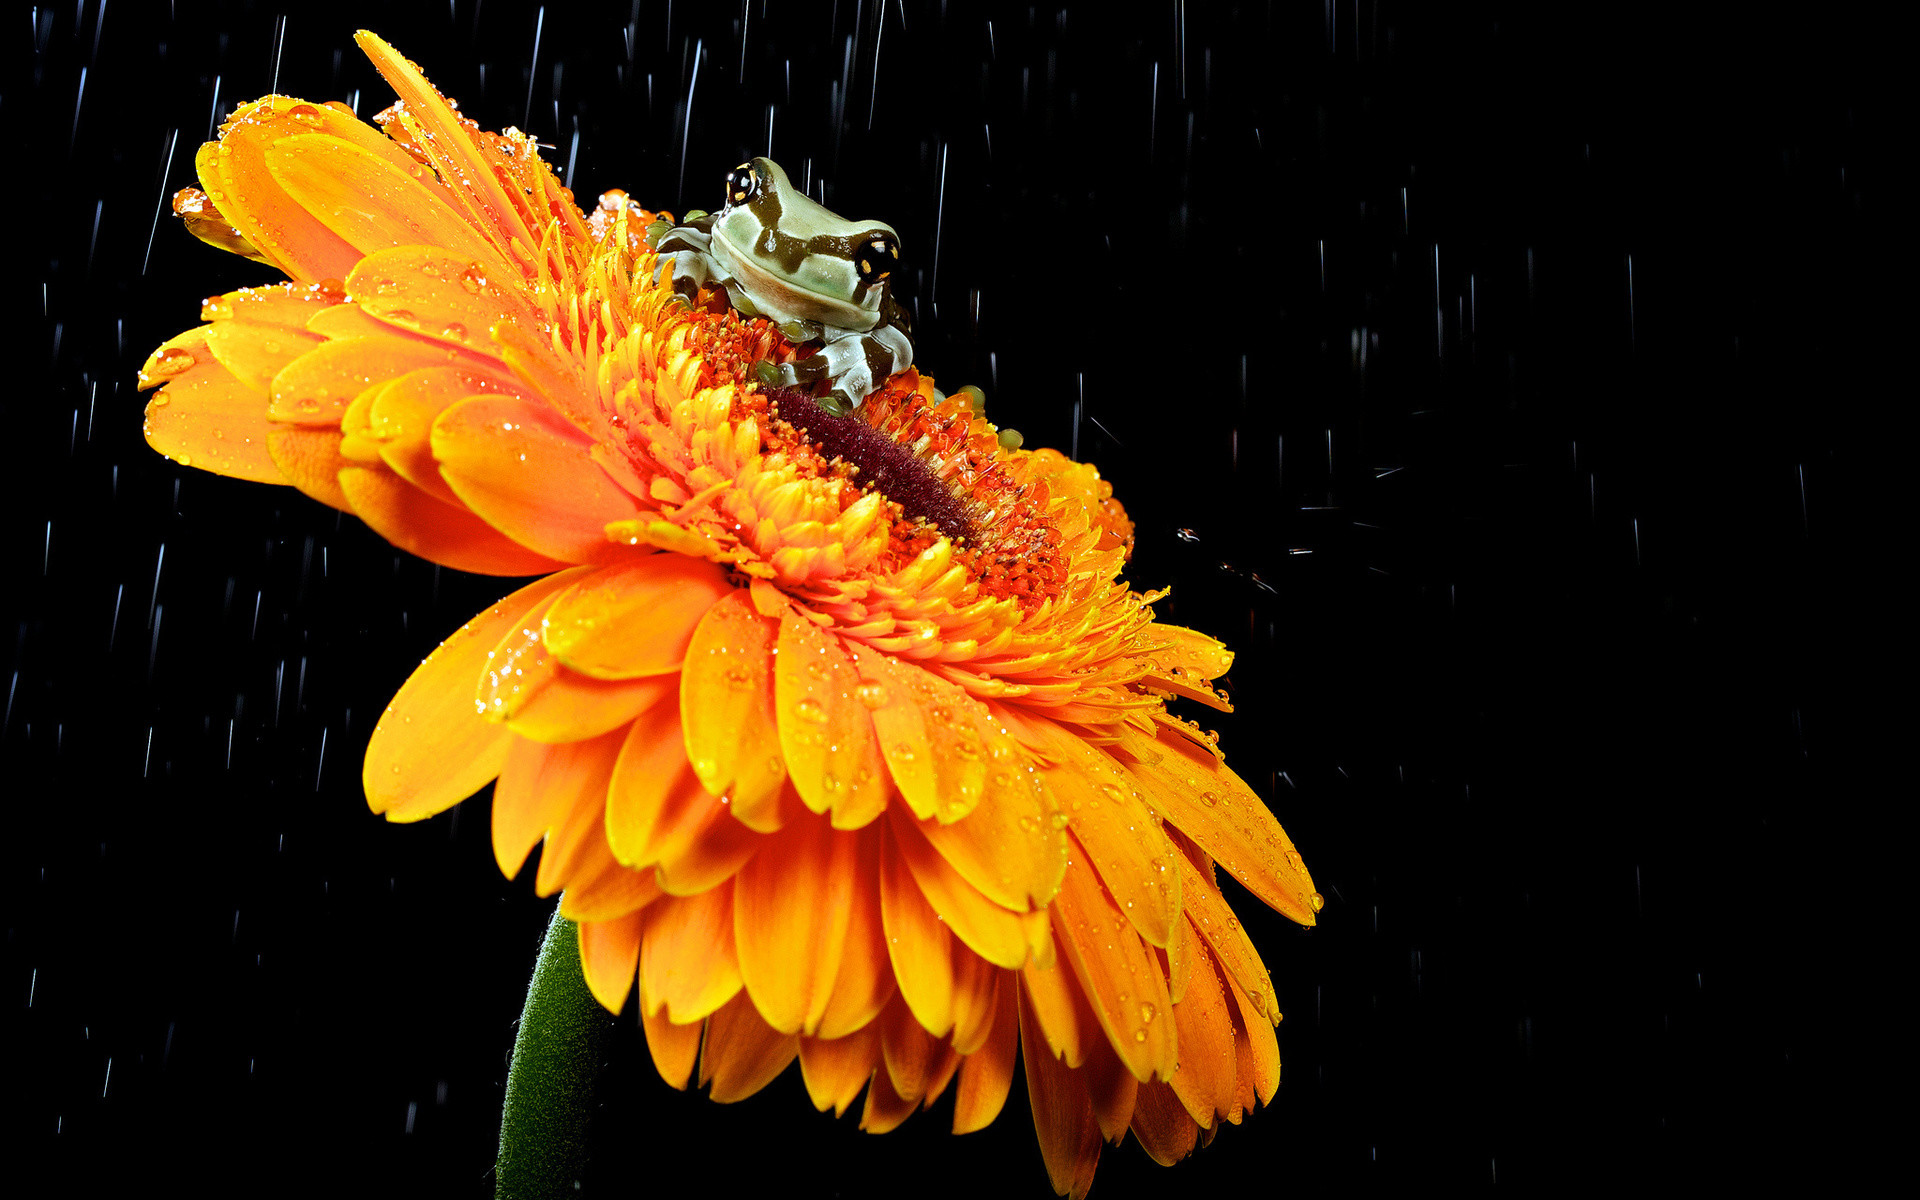 Res: 1920x1200, Bild: Netter Froggy Orange Flower wallpapers and stock photos. Â«